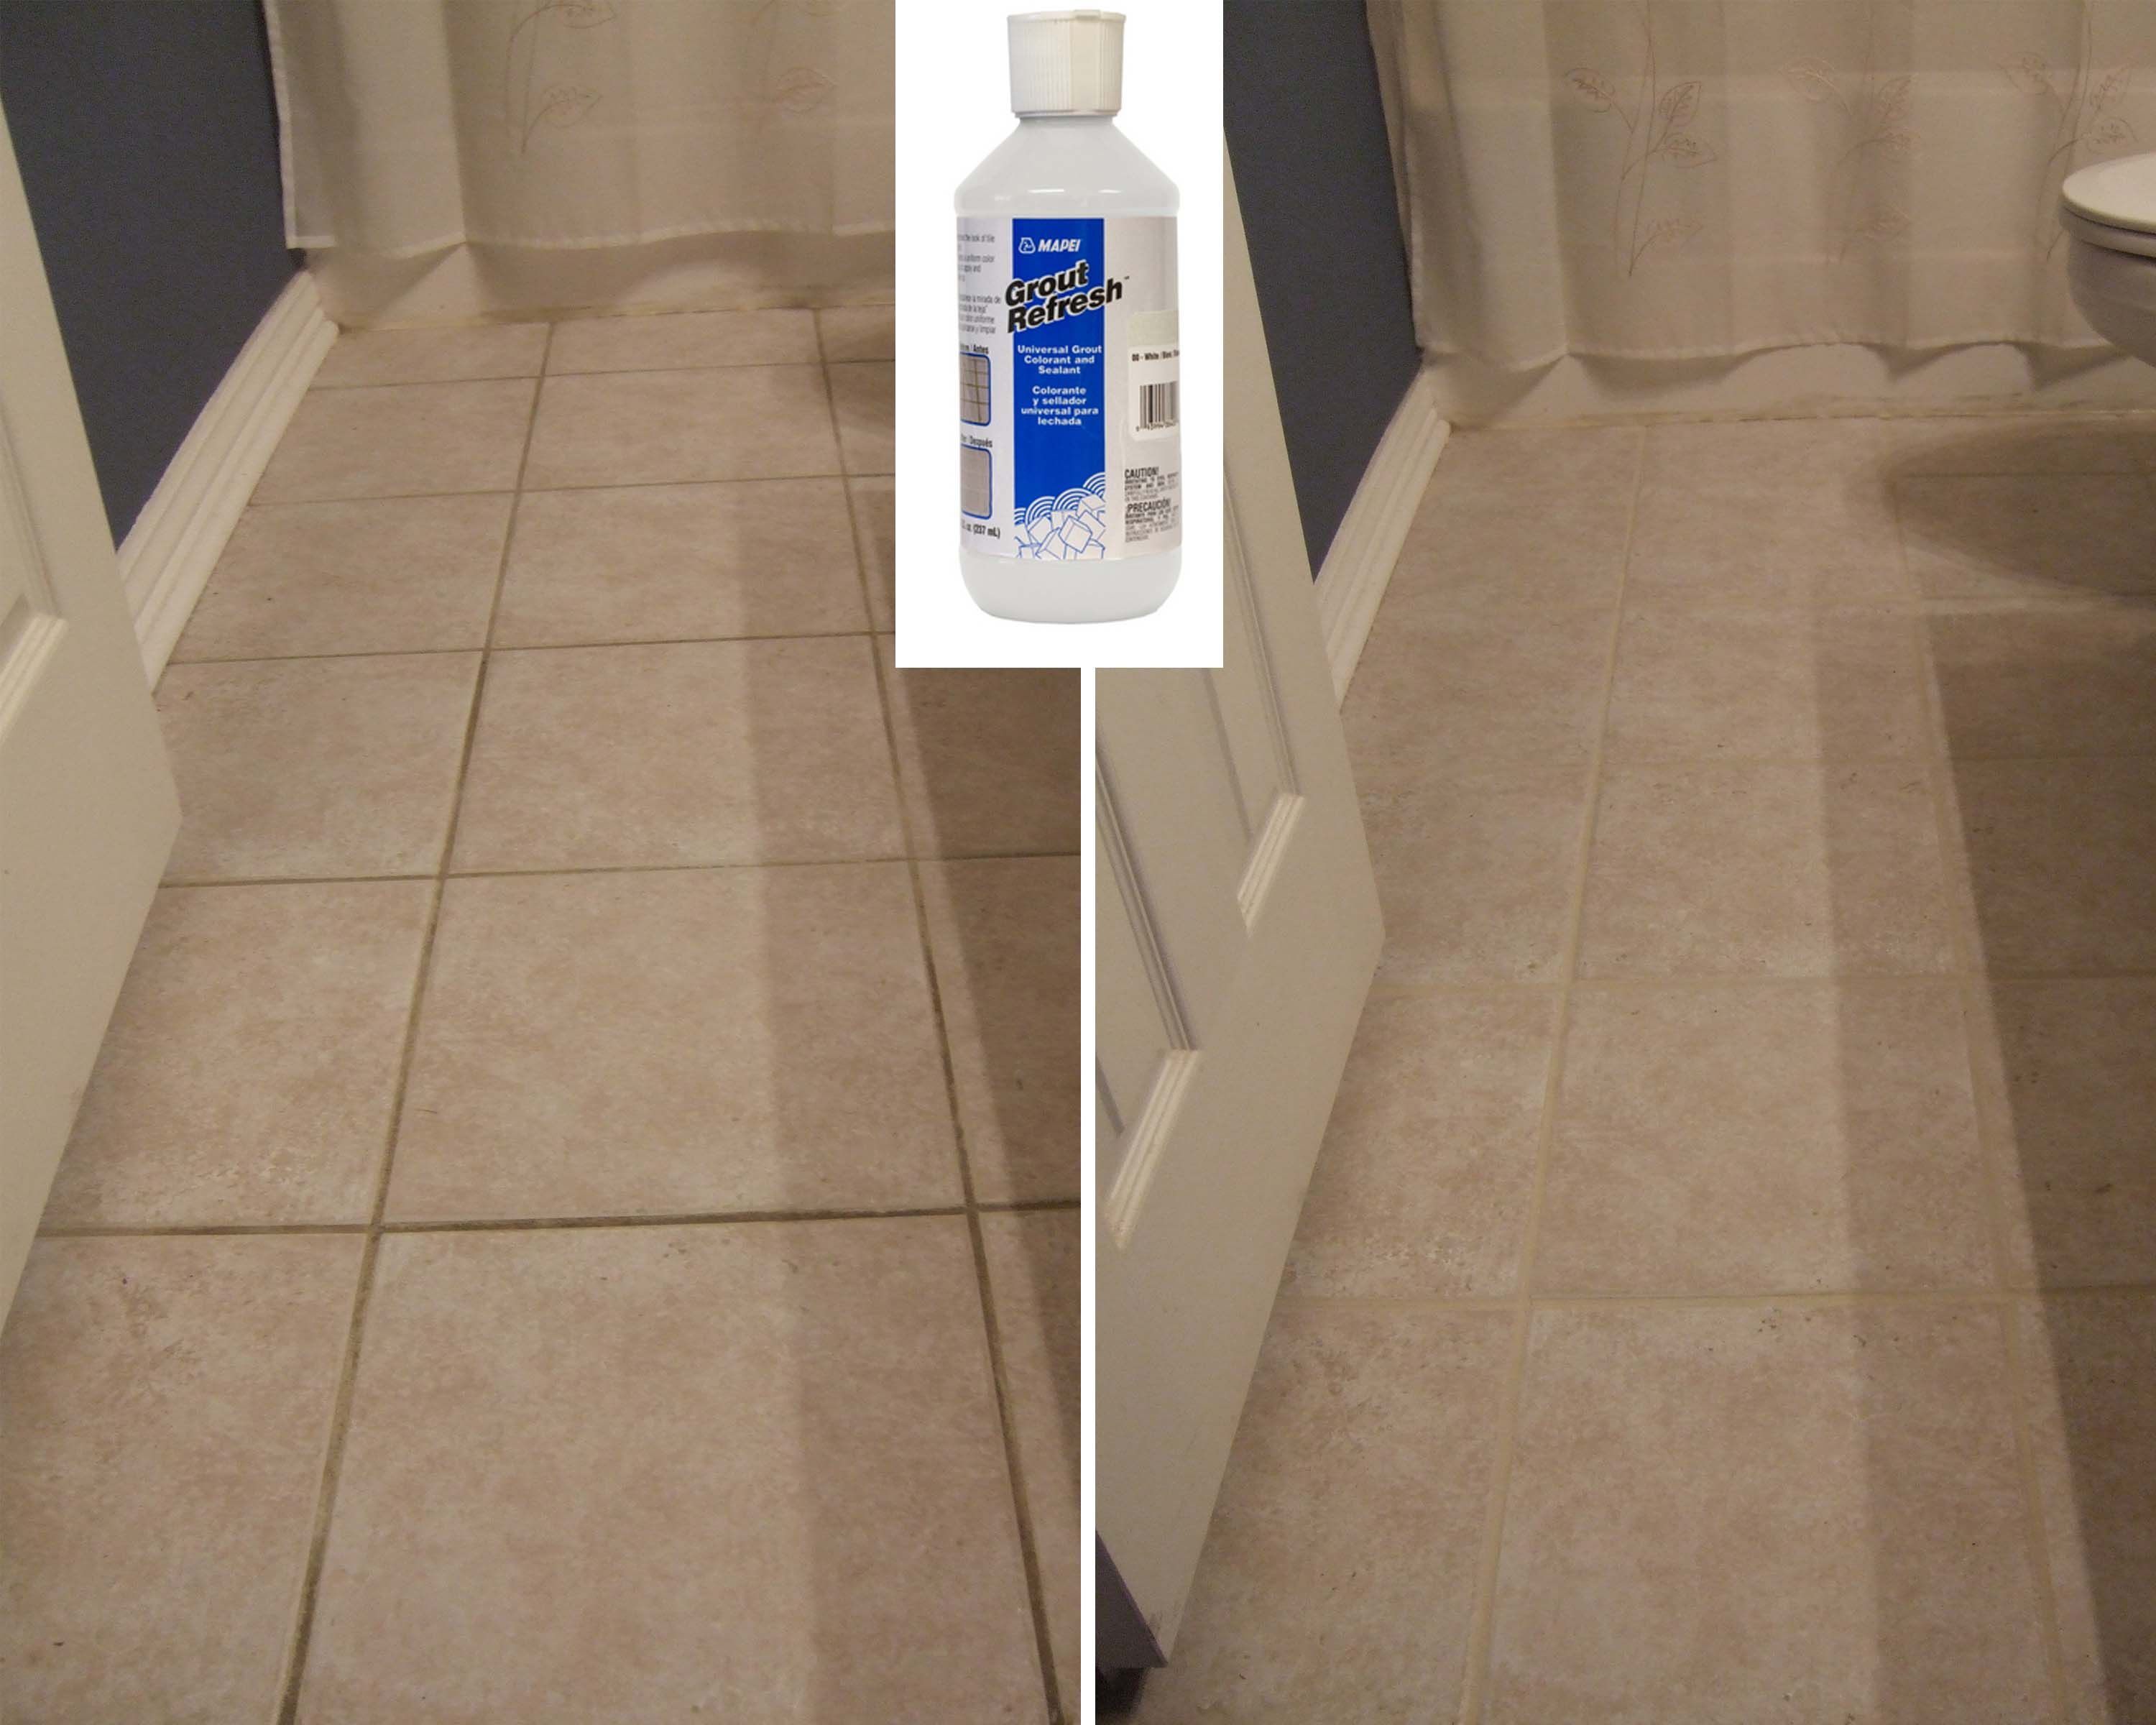 How To Clean Grout With Peroxide Baking Soda Household Hints